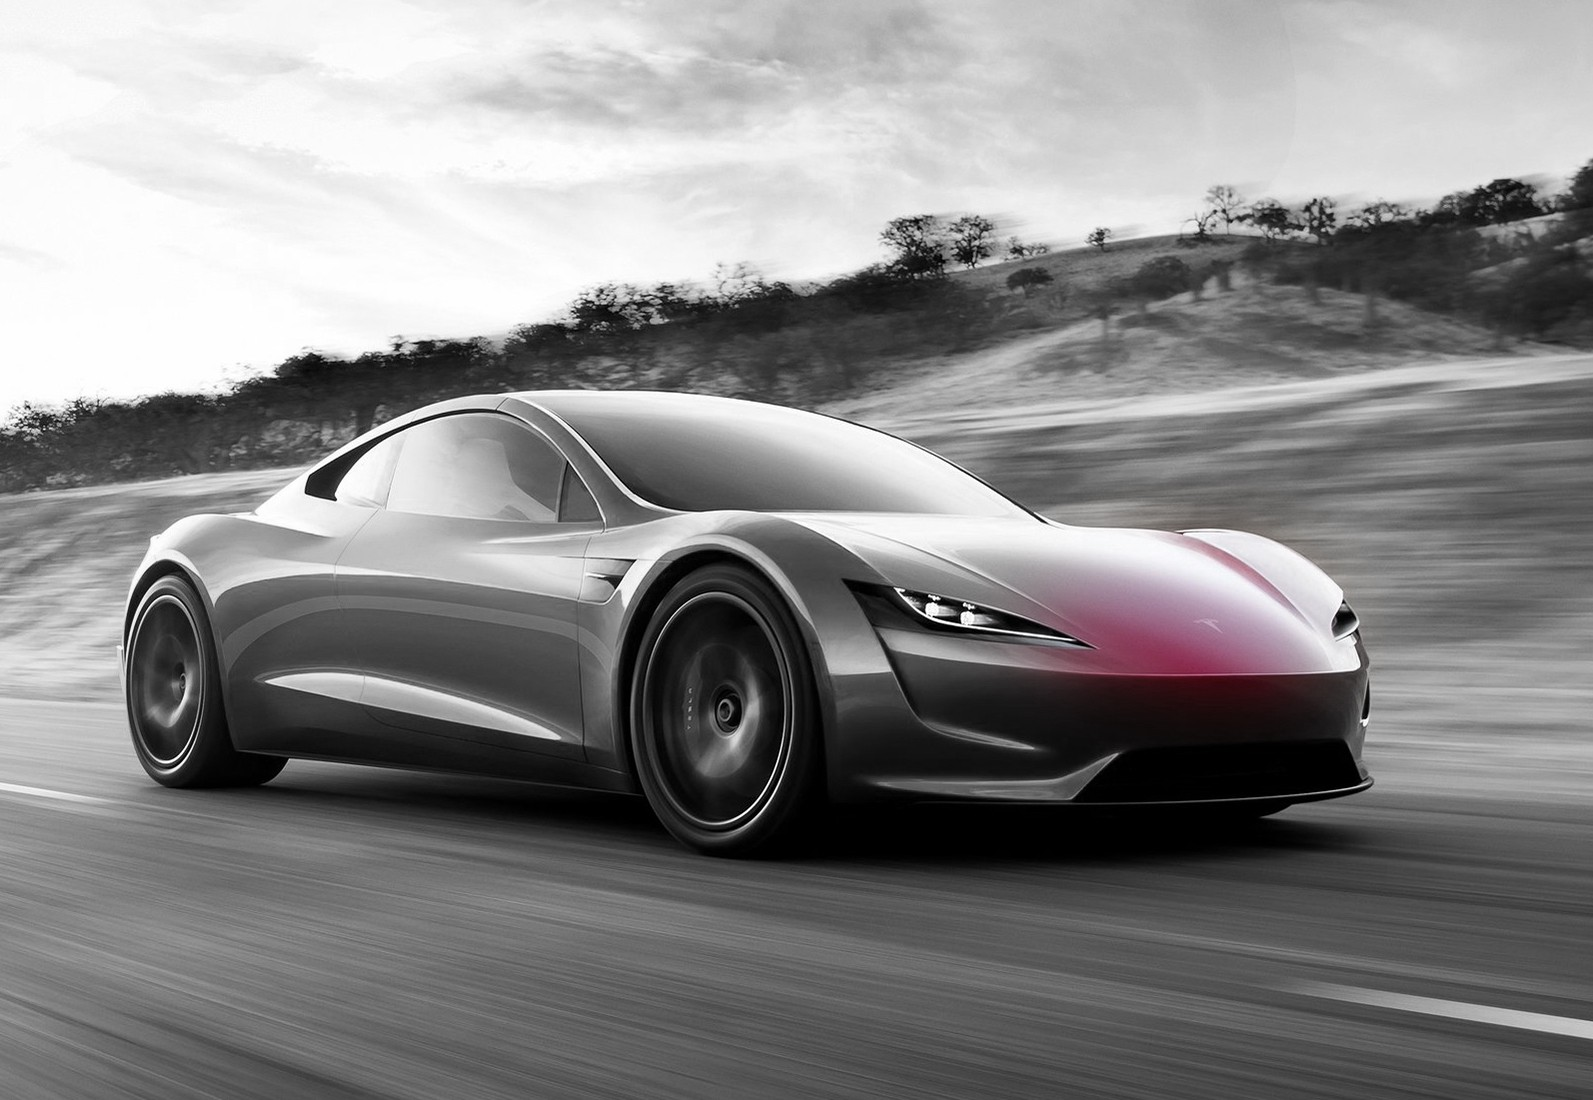 The New Tesla Roadster Design Breakdown Part 2 Alborz Heydaryan